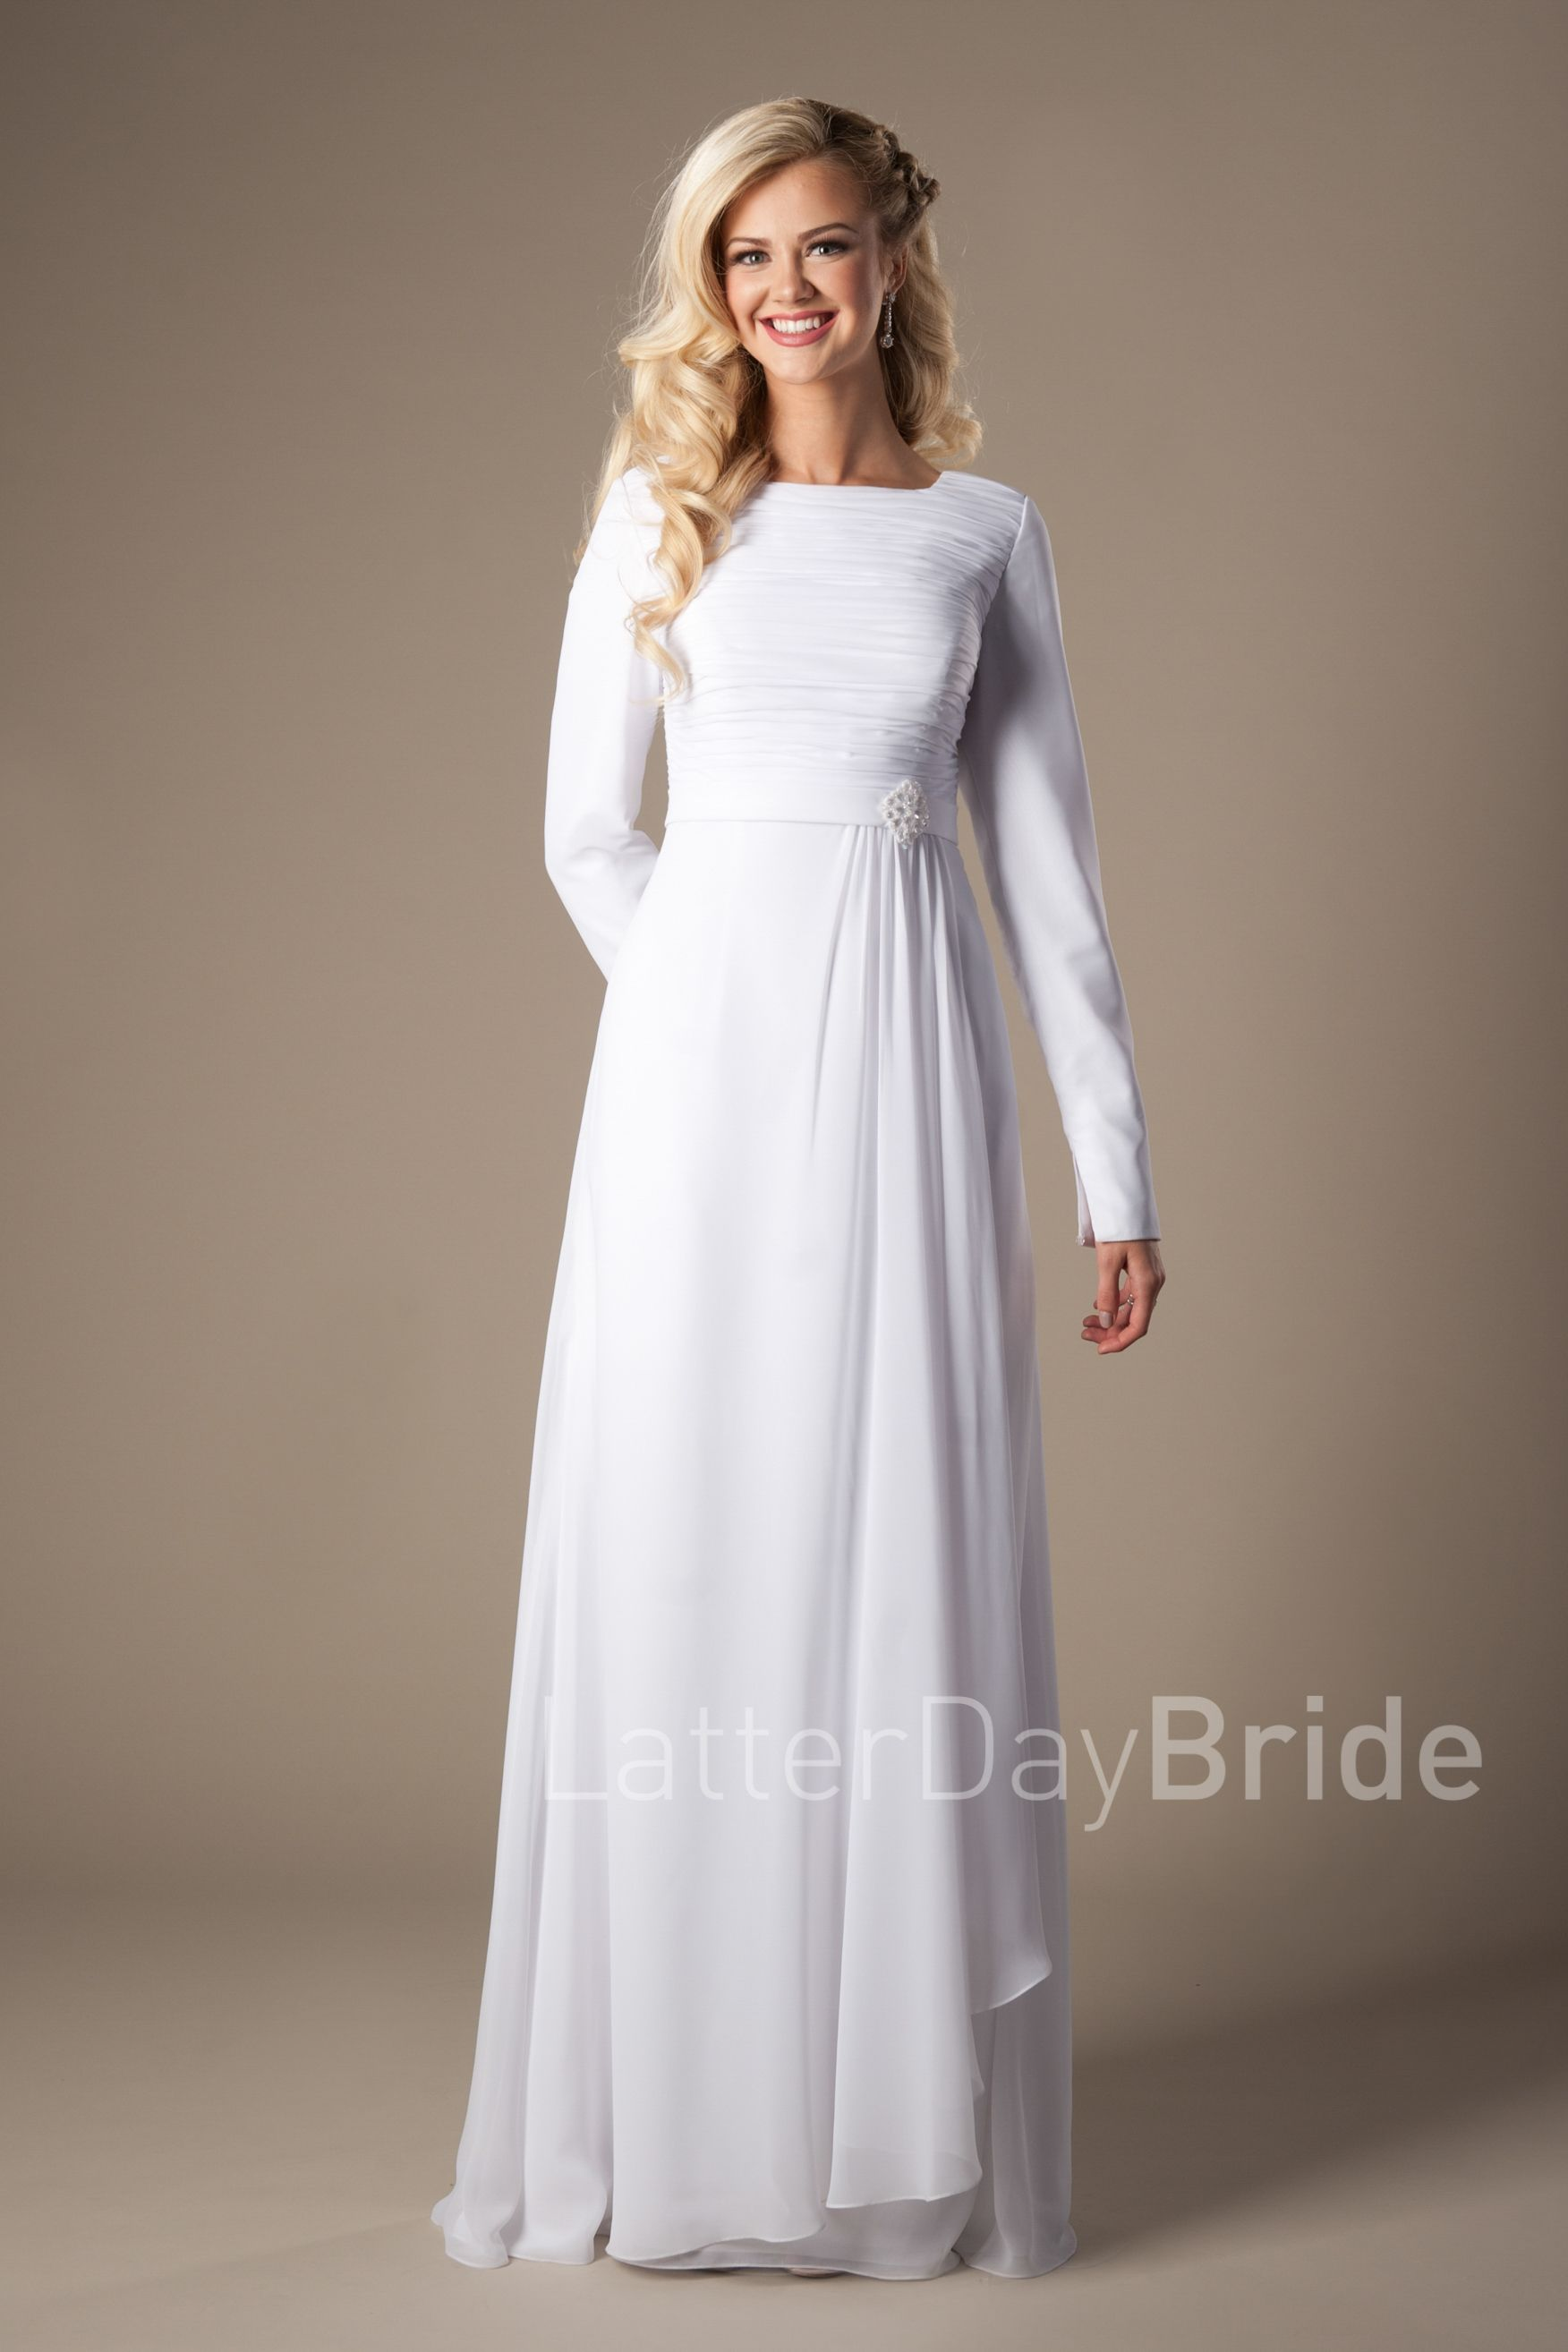 Image Result For Lds Sealing Dresses Lds Temple Dress Modest